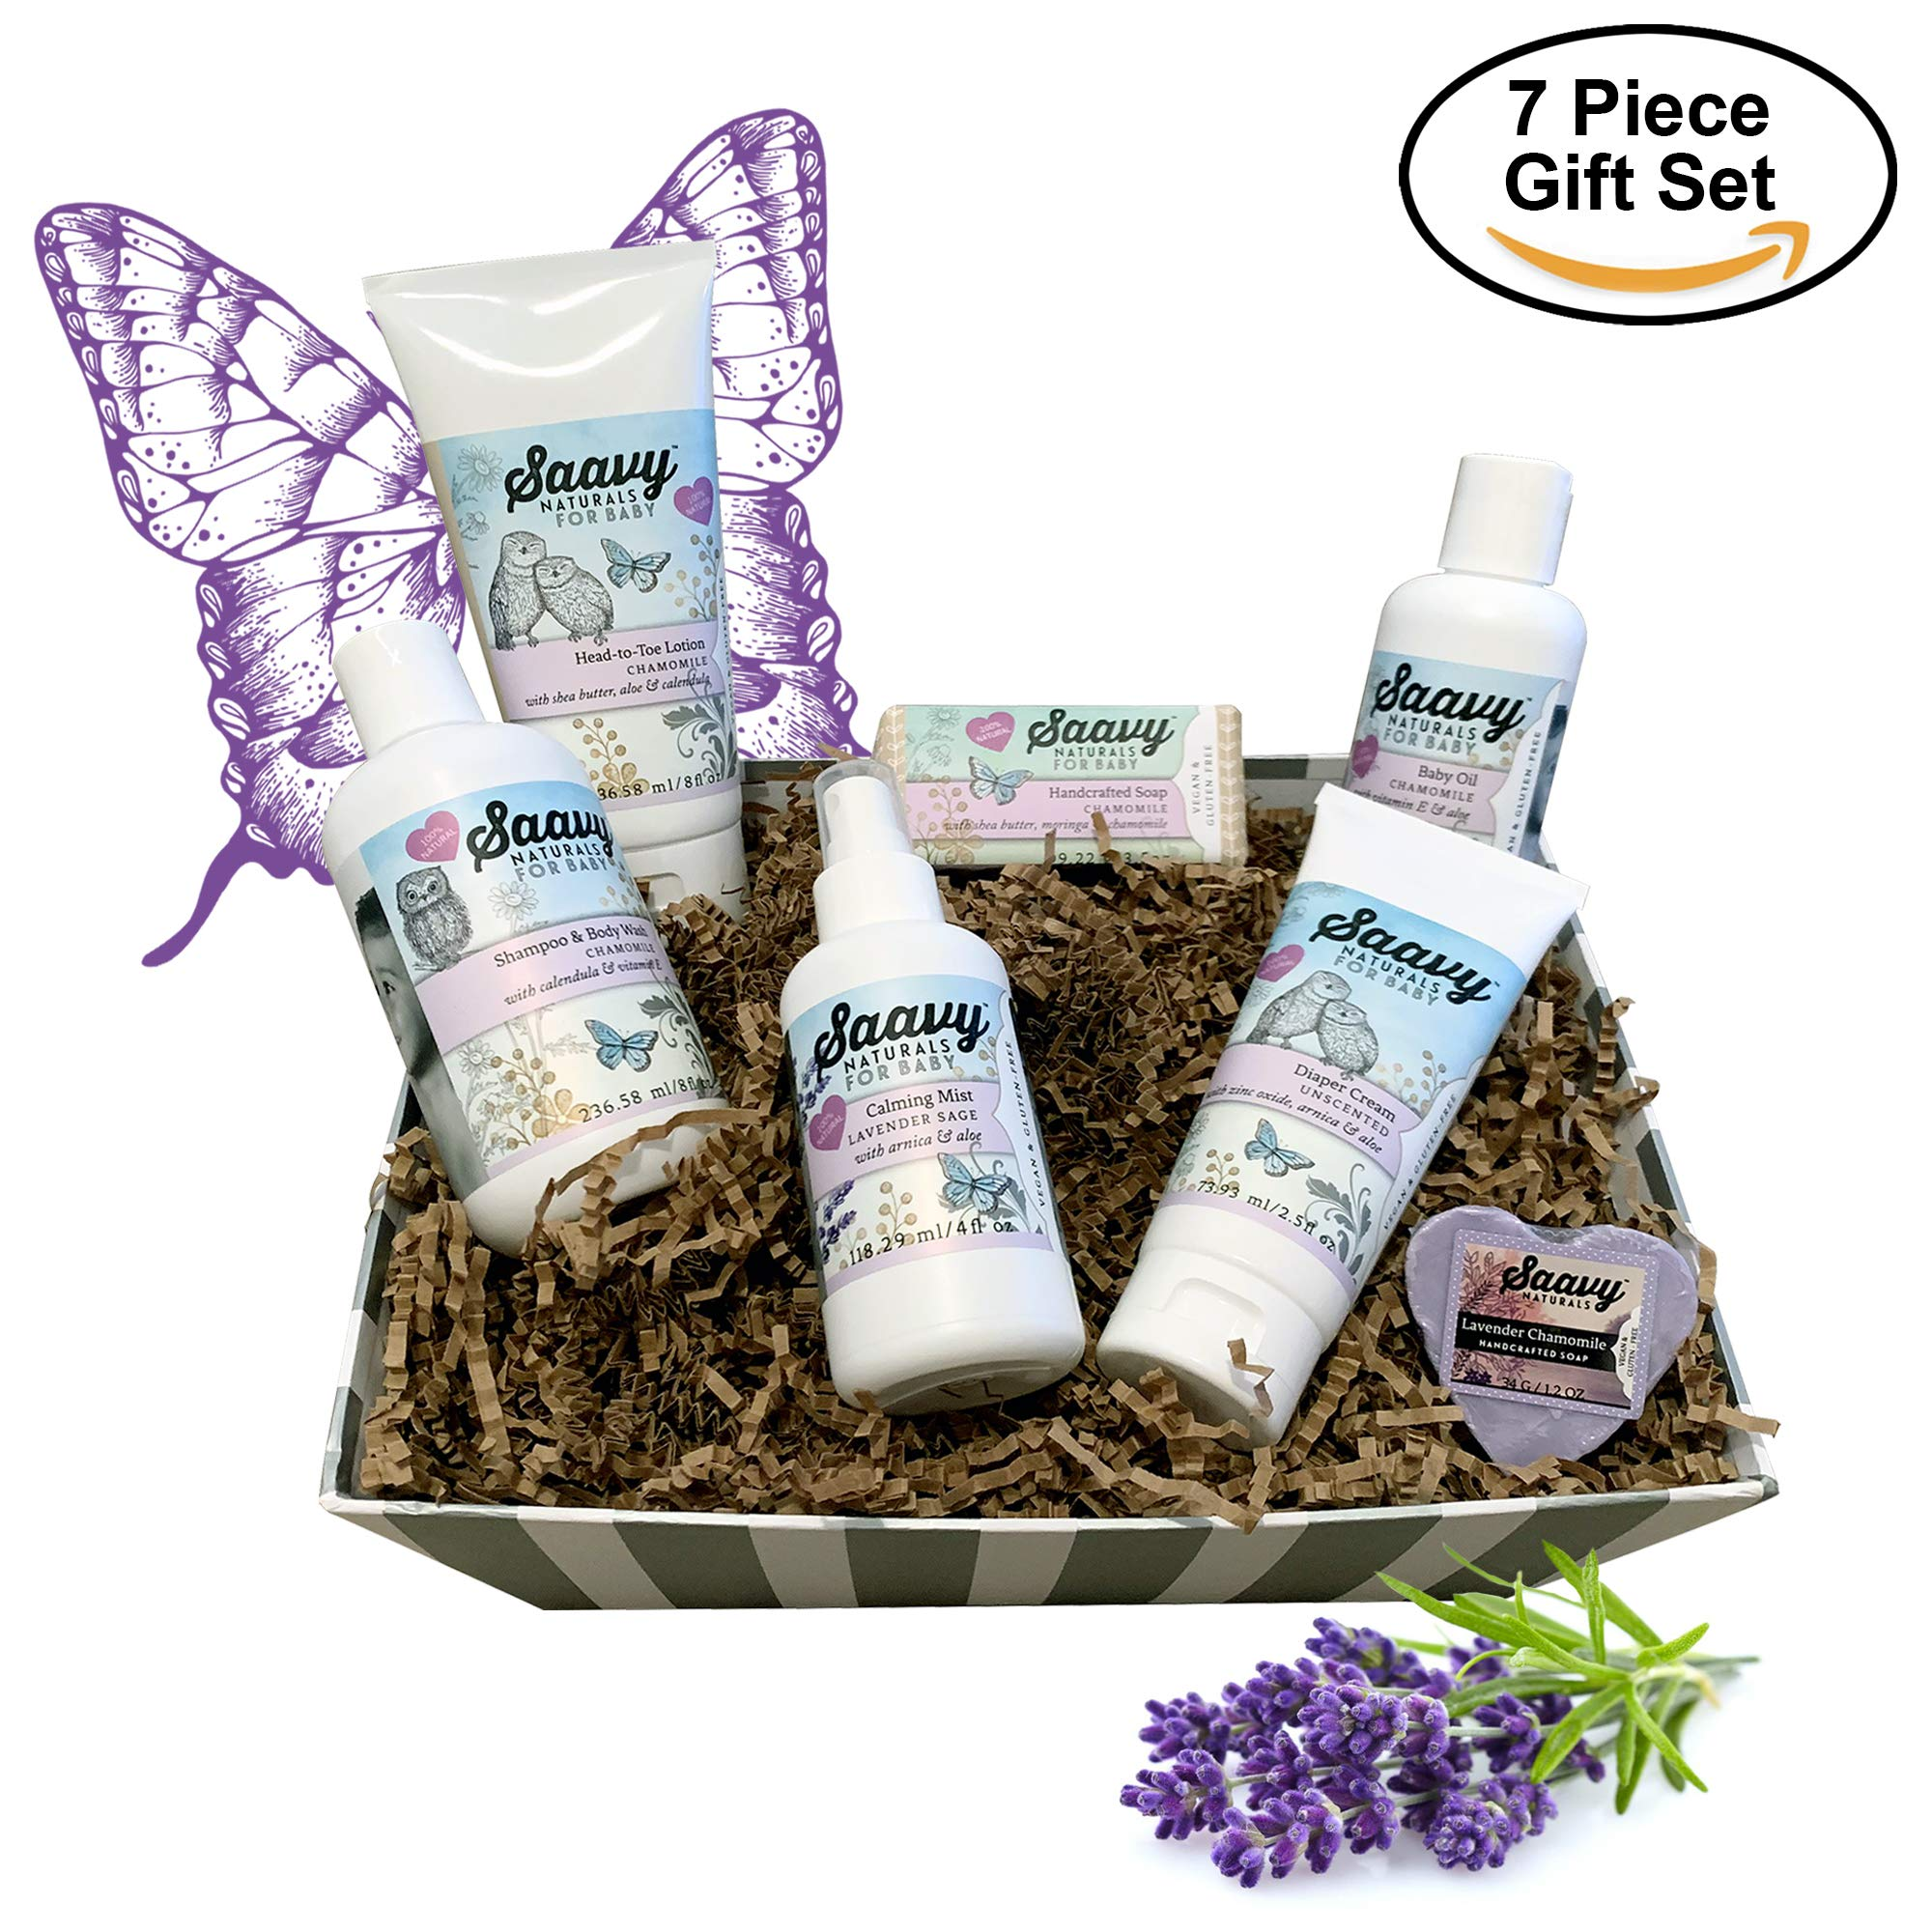 Saavy Naturals Baby Shower Gifts | Bath Set for Babies Includes 2 Soap Bars, 1 Infant Lotion, 1 Shampoo & Body Wash, 1 Baby Oil, 1 Calming Mist & 1 Unscented Diaper Cream | Chamomile & Lavender Scents by Saavy Naturals